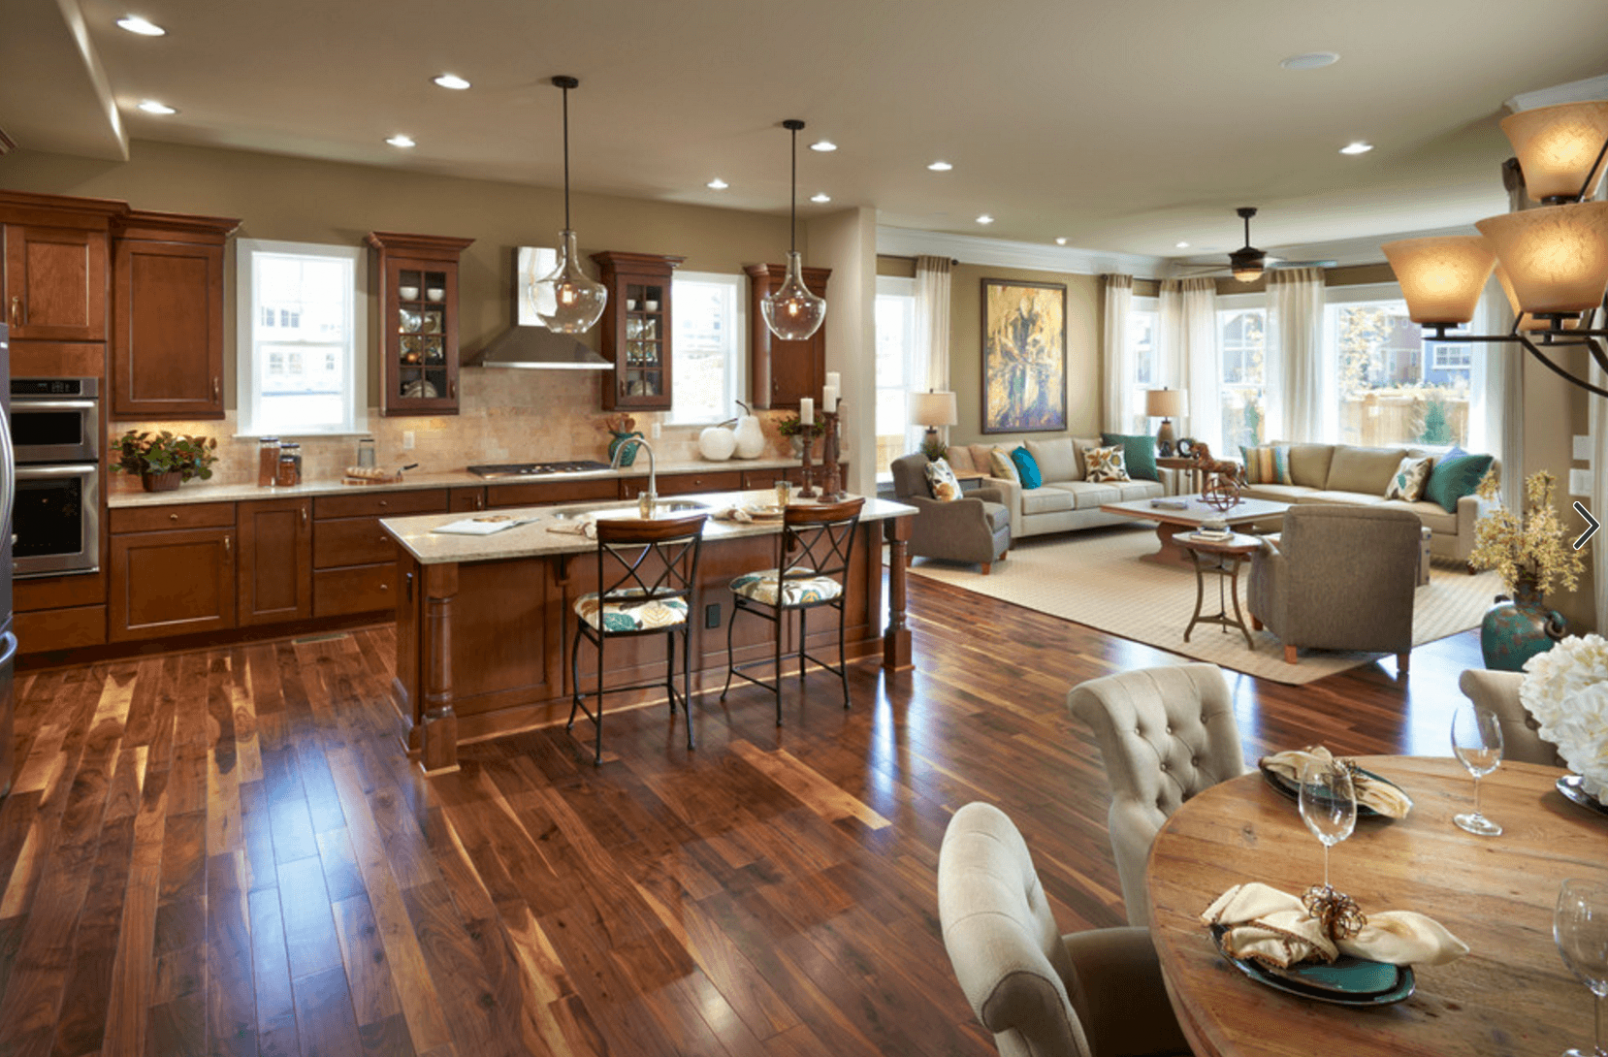 10 Great Reasons to Love an Open Floor Plan | Open concept kitchen ...